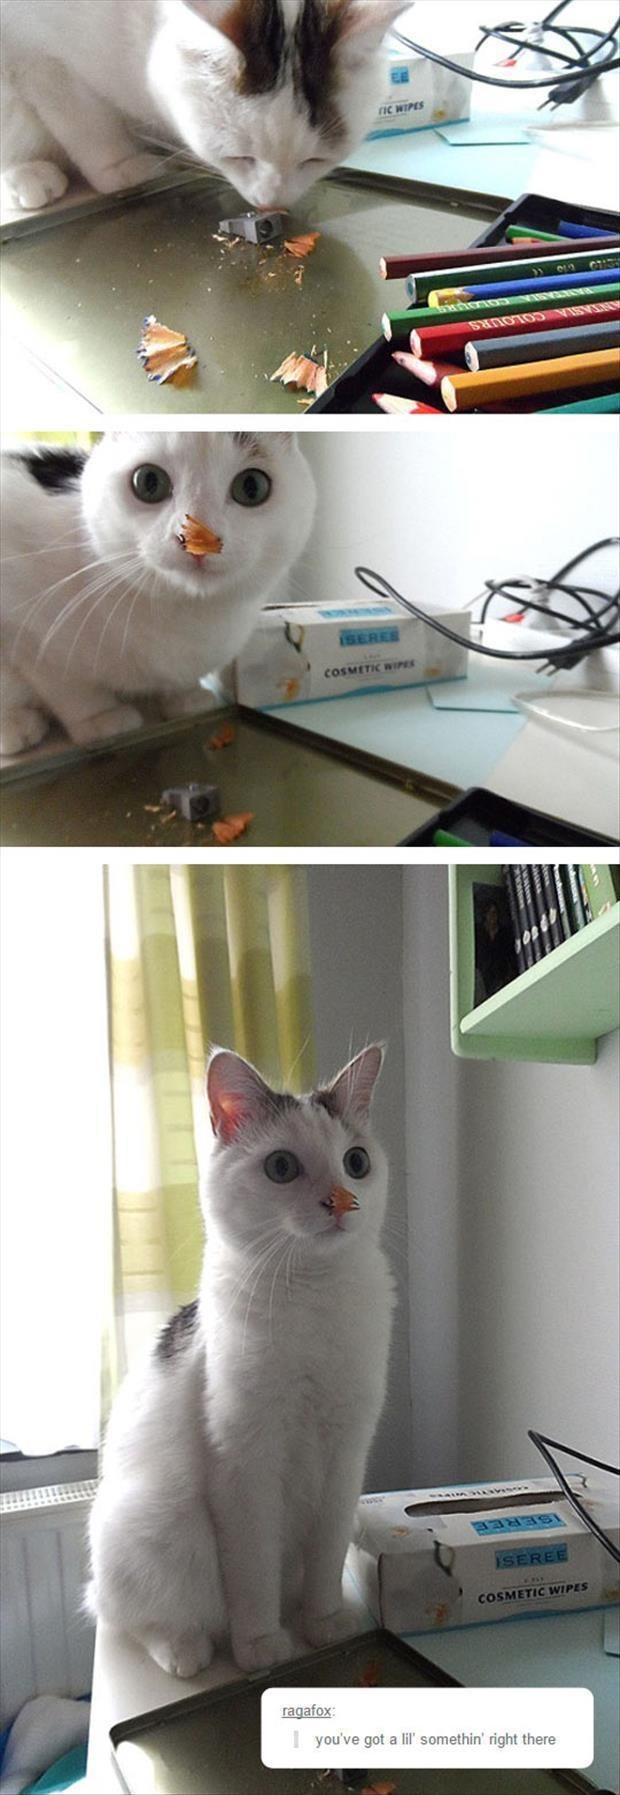 caturday meme with pics of a cat getting pencil shavings on its nose